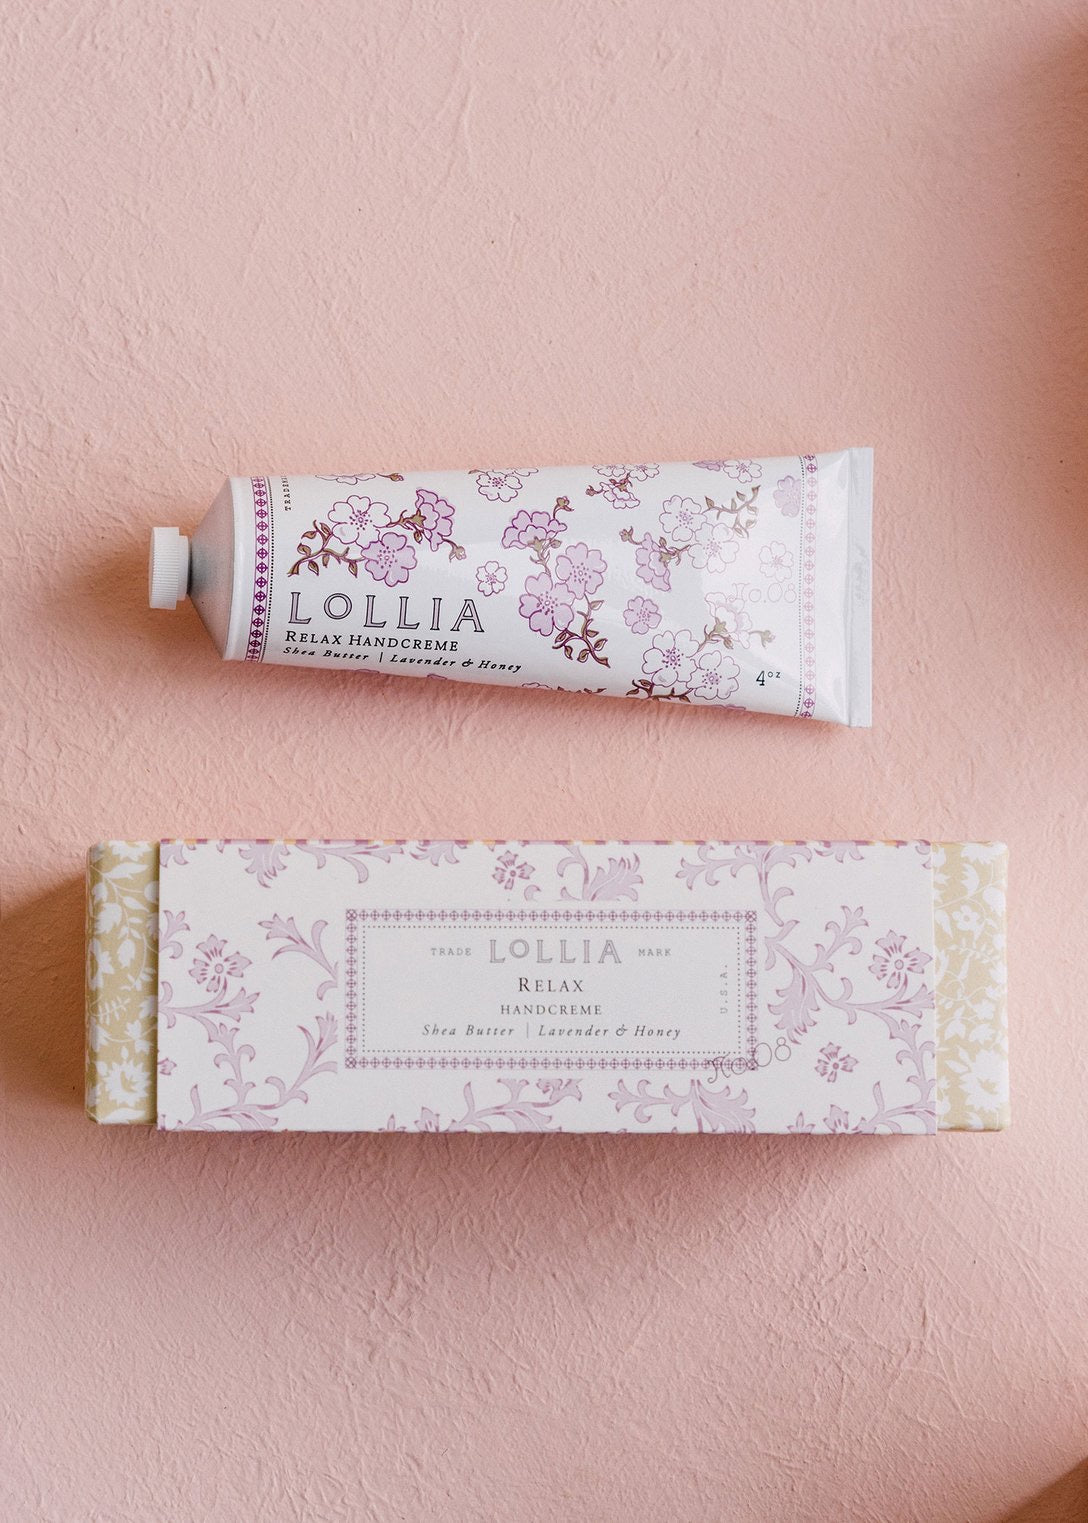 Lollia - Relax Shea Butter Handcreme